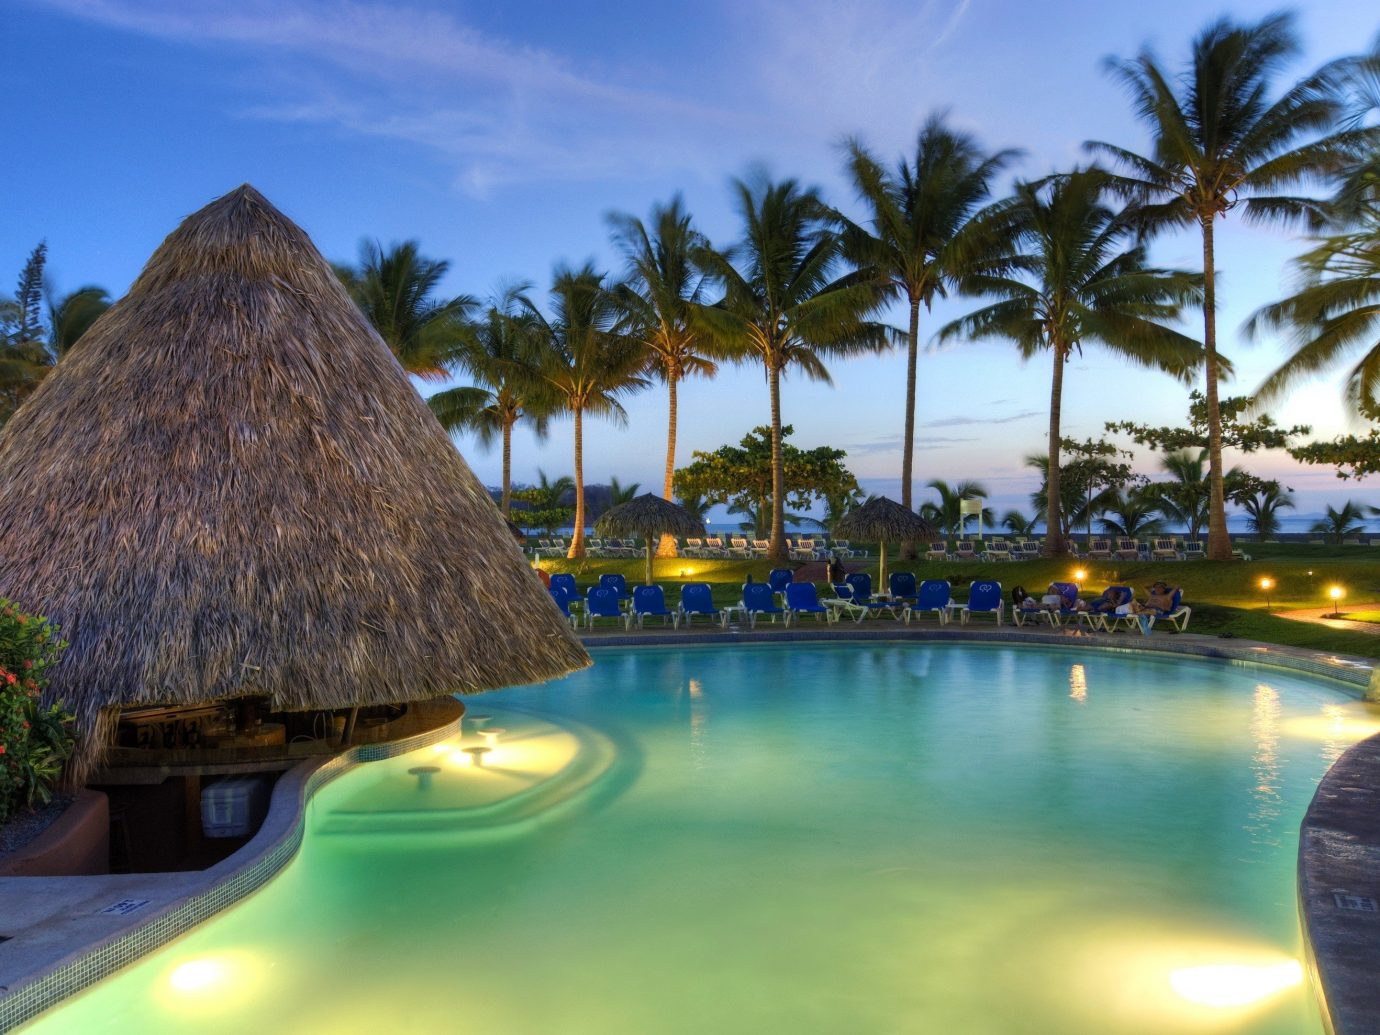 Hotels sky tree outdoor swimming pool Resort vacation estate arecales palm Sea tropics Lagoon caribbean bay surrounded